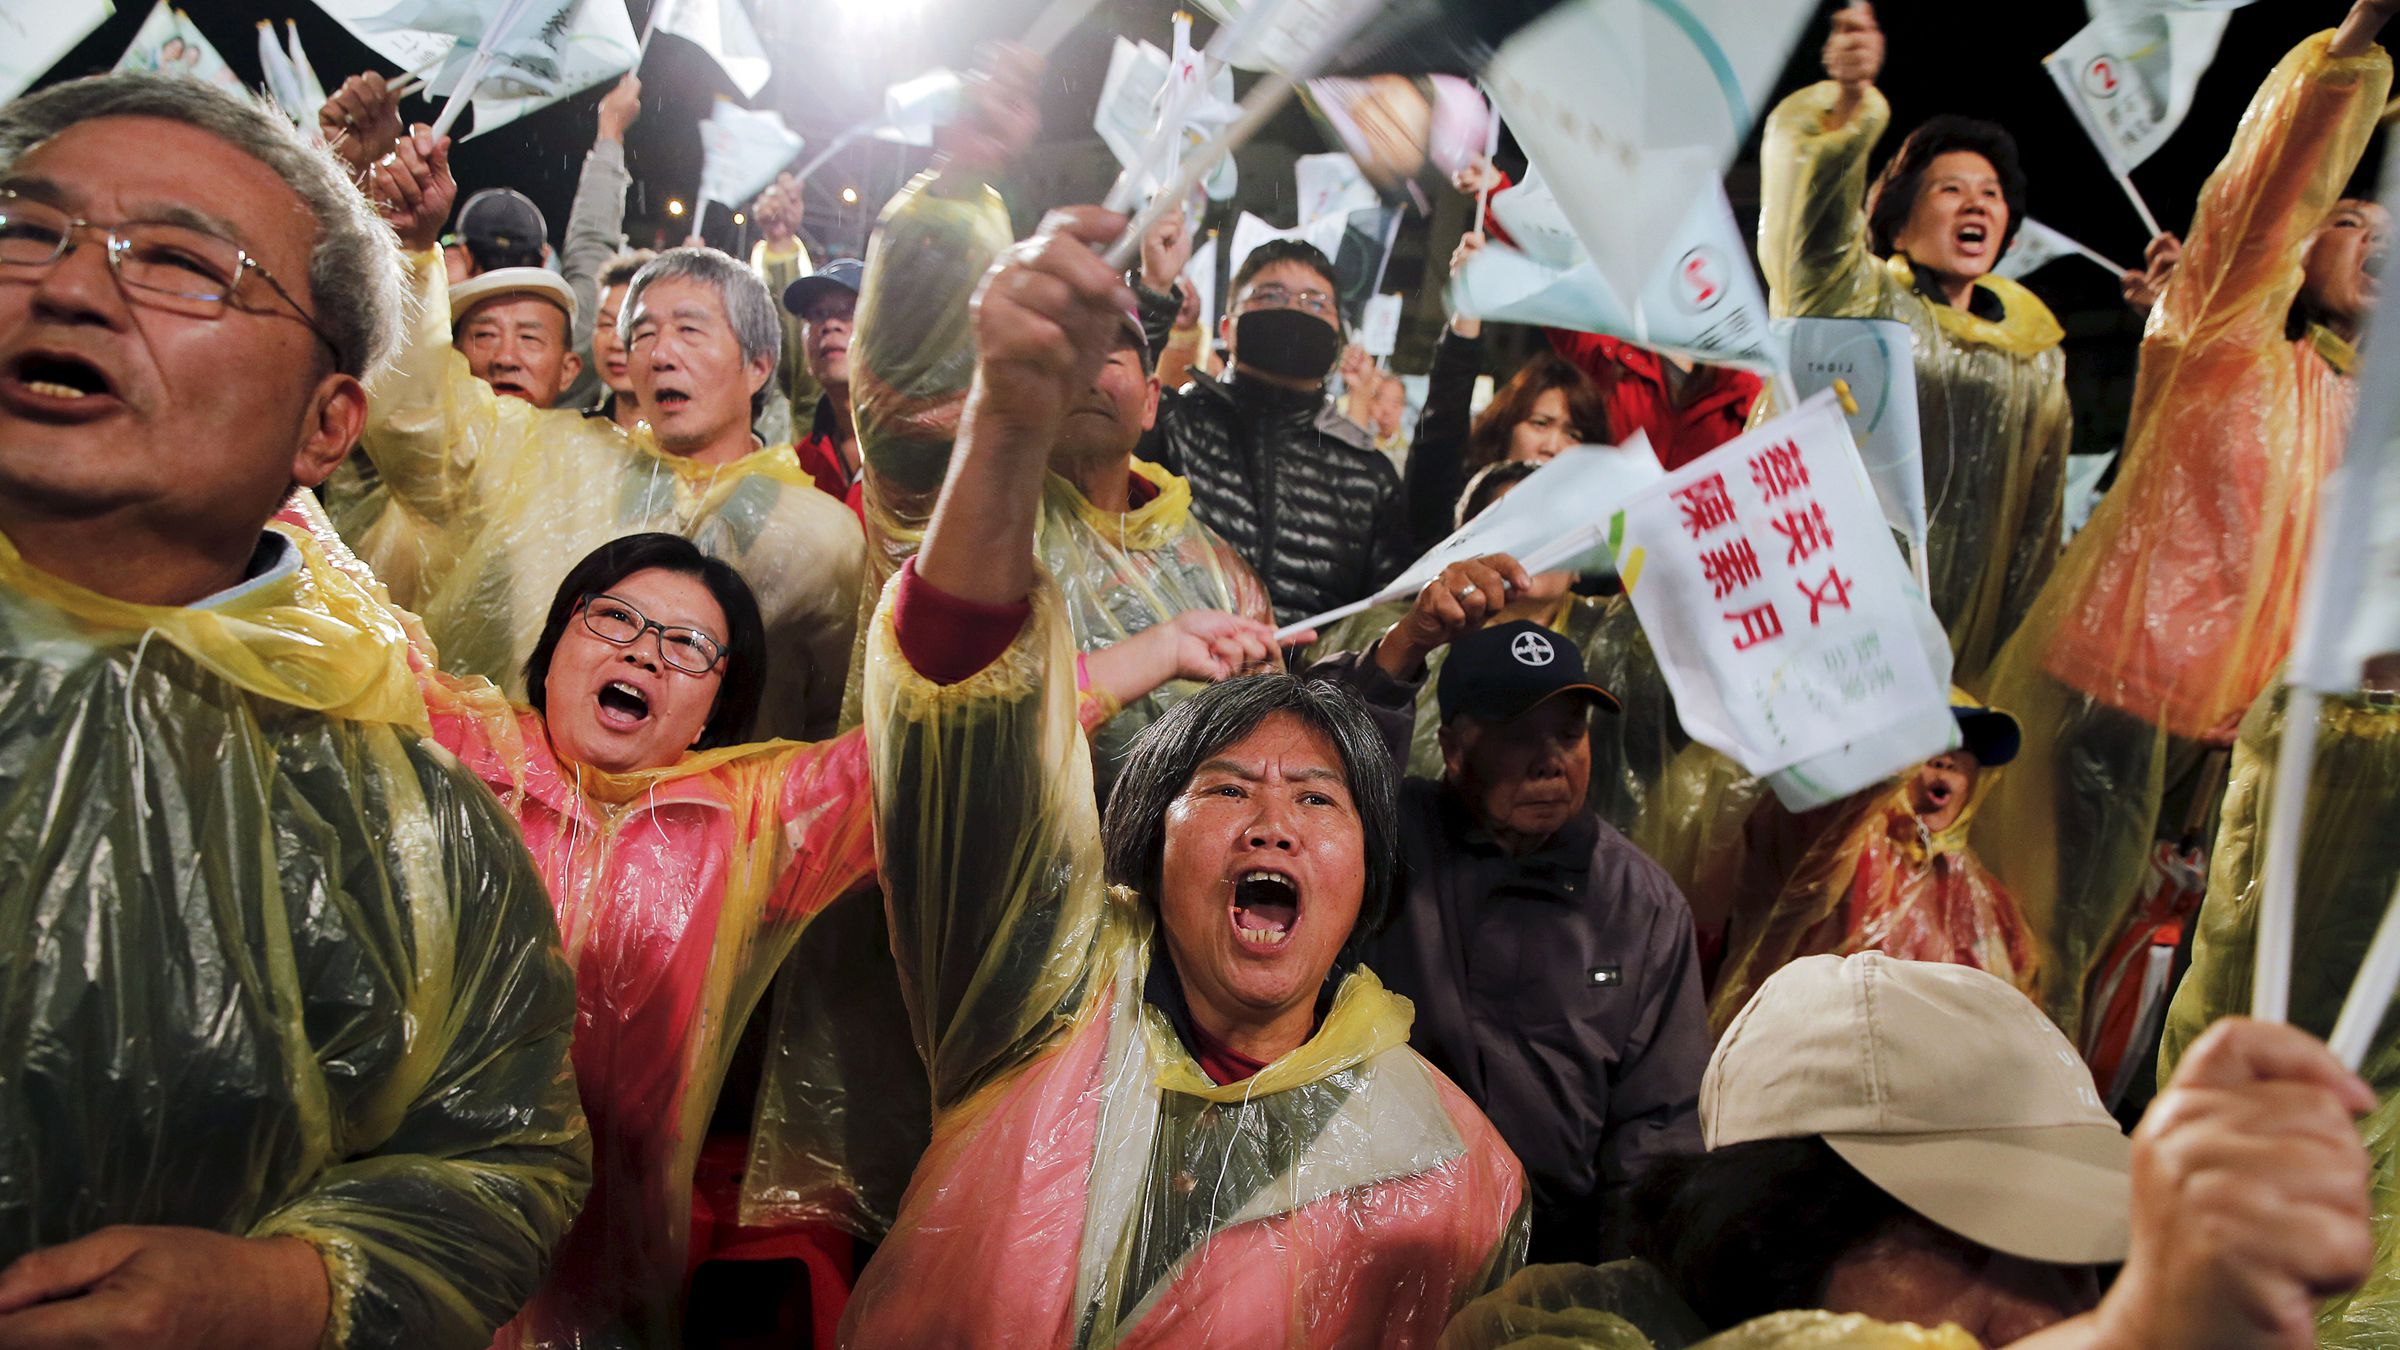 Supporters react as Taiwan's Democratic Progressive Party (DPP) Chairperson and presidential candidate Tsai Ing-wen (unseen) addresses them from the stage during a campaign rally in Wuchi district, Taichung city in central Taiwan January 12, 2016